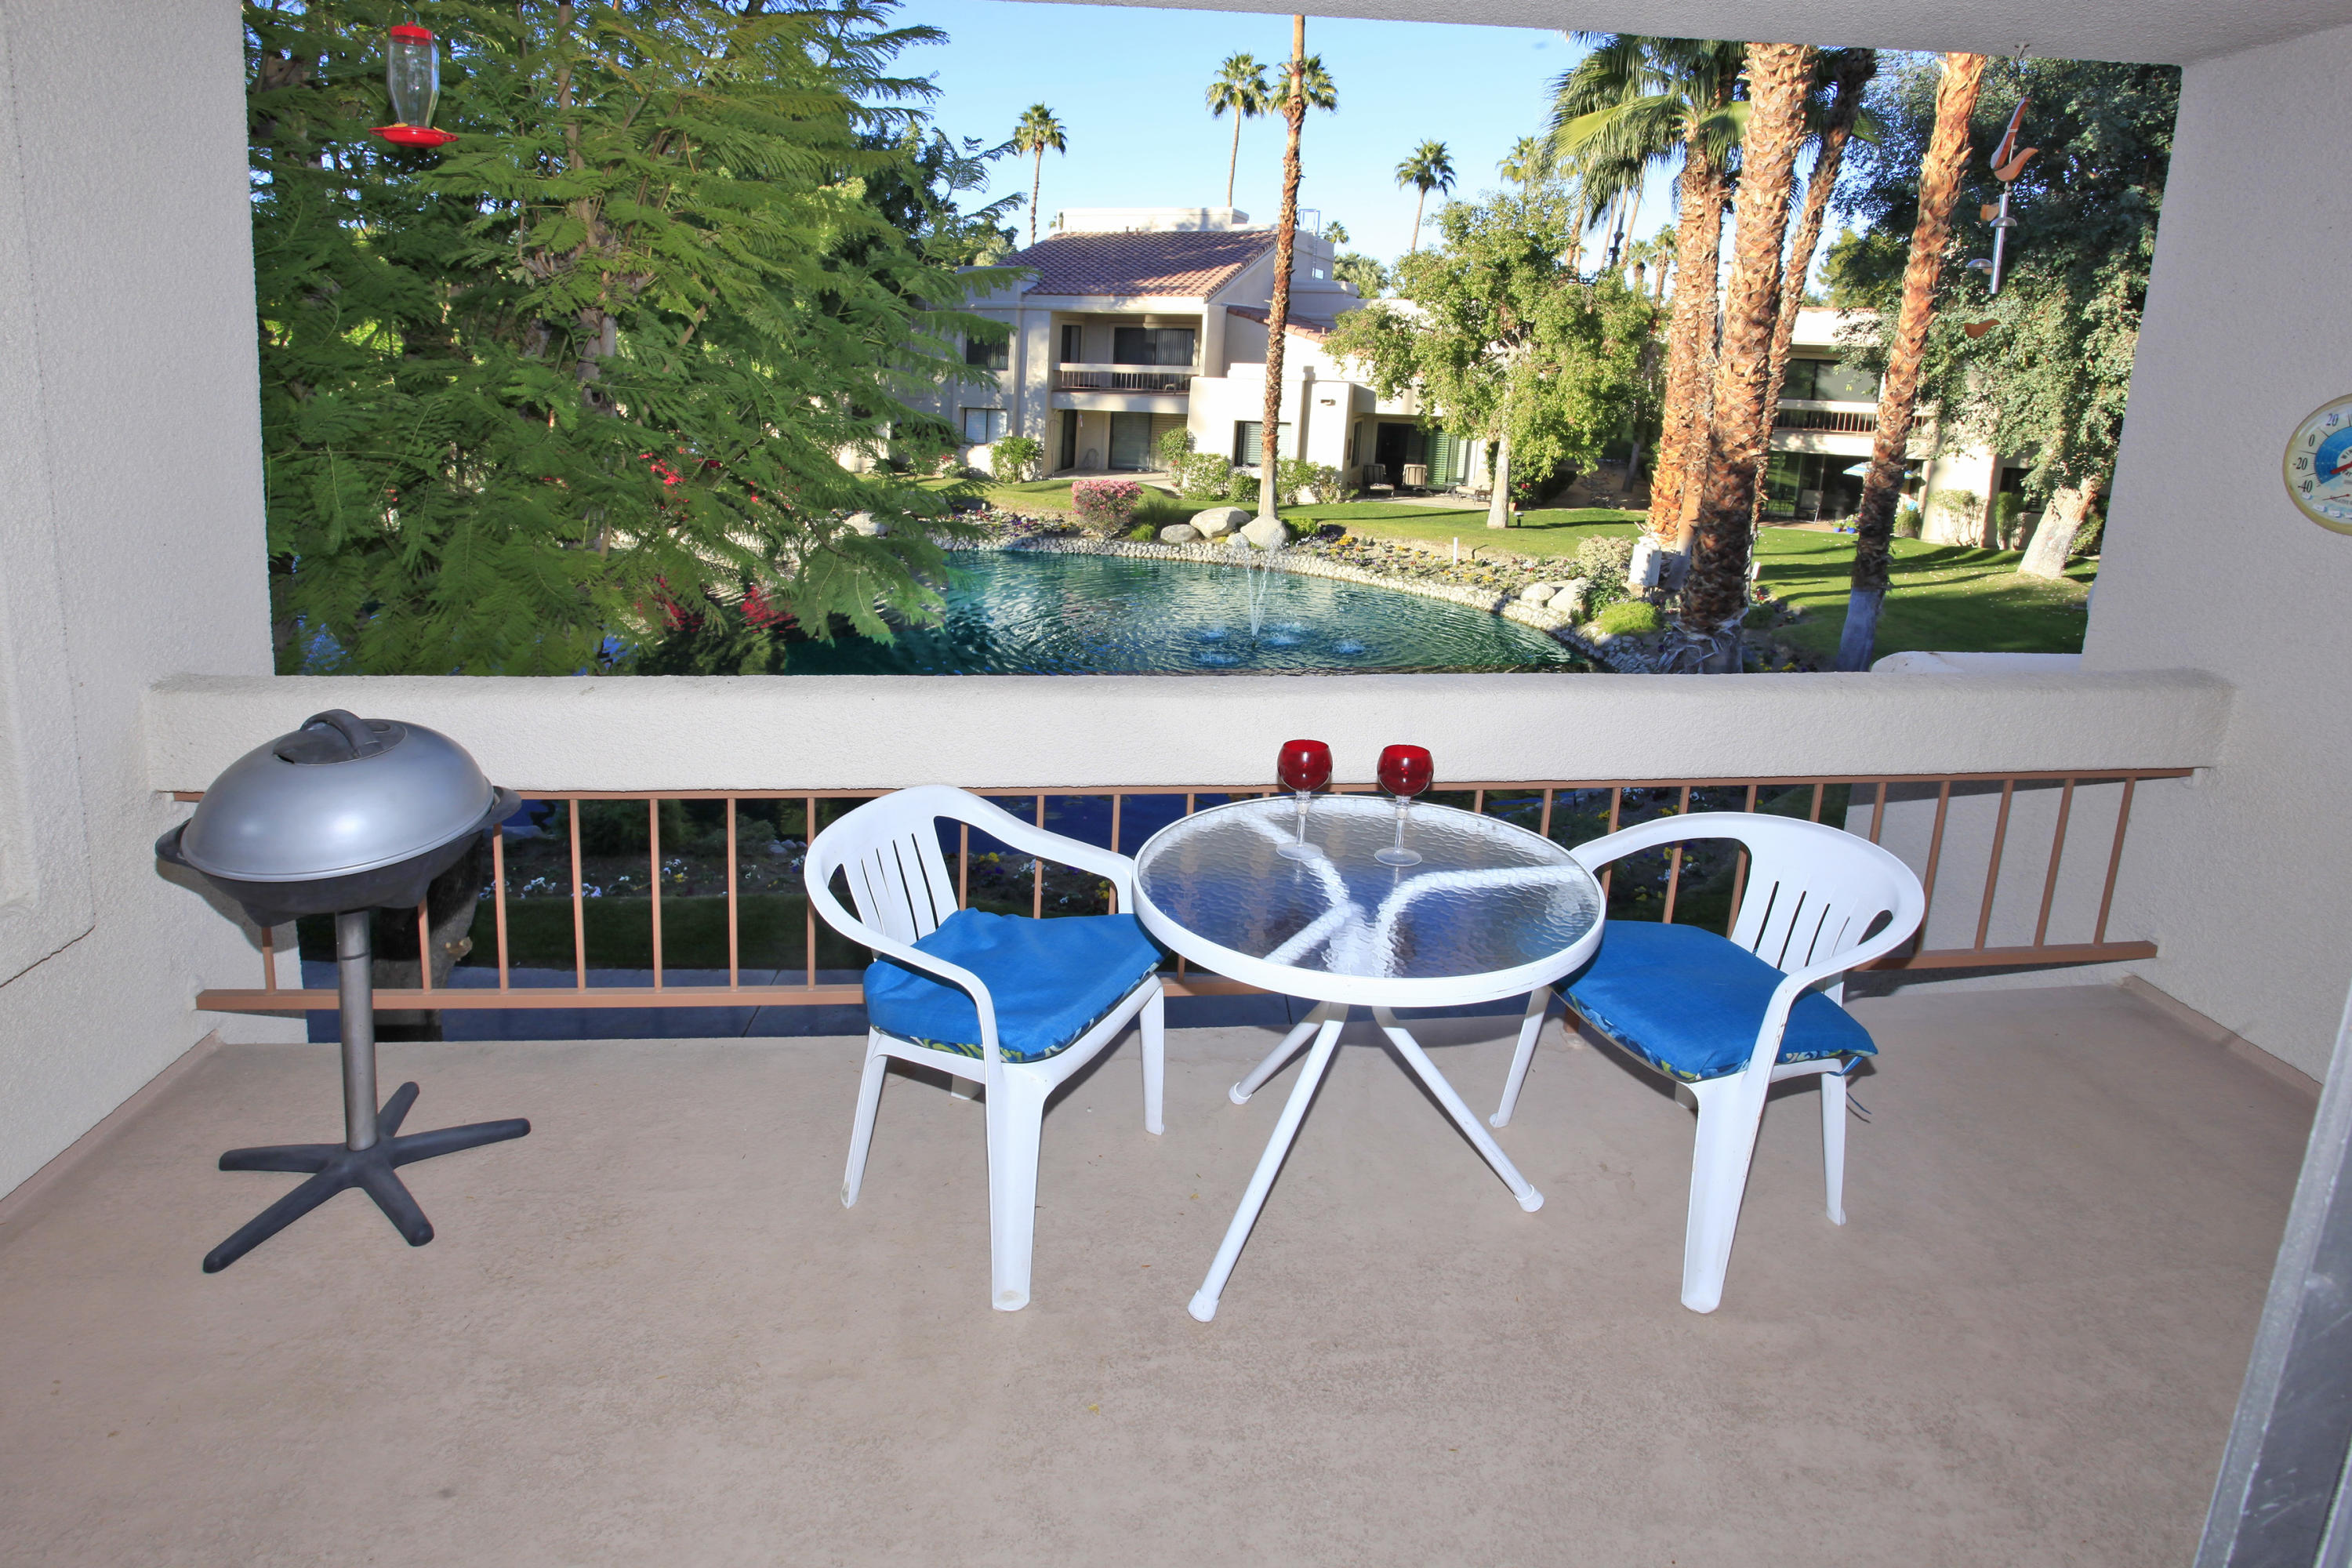 Large 2 bedroom 2 bath with lagoon views from living room and dining room. Tile floor thru out unit.. Enjoy all amenities this lushly-landscaped gated community has to offer. You will be amazed with sights and sounds of streams and waterfalls, lagoons, 5 pools and spas. The newly refurbished club house includes exercise room and saunas. Soak in the views of the mountains or enjoy the walking trails around the complex or tennis courts. Public golf course is just across the street. Canyon Shores has their own onsite management. Perfect for a Vacation Home or Investment property. Located near shopping, restaurants, airport, Highway 111 and nestled between Palm Springs and Palm Desert. Makes a perfect seasonal rental or year round home. Only 7 days required for rentals. Land you own - no lease and FHA approved!